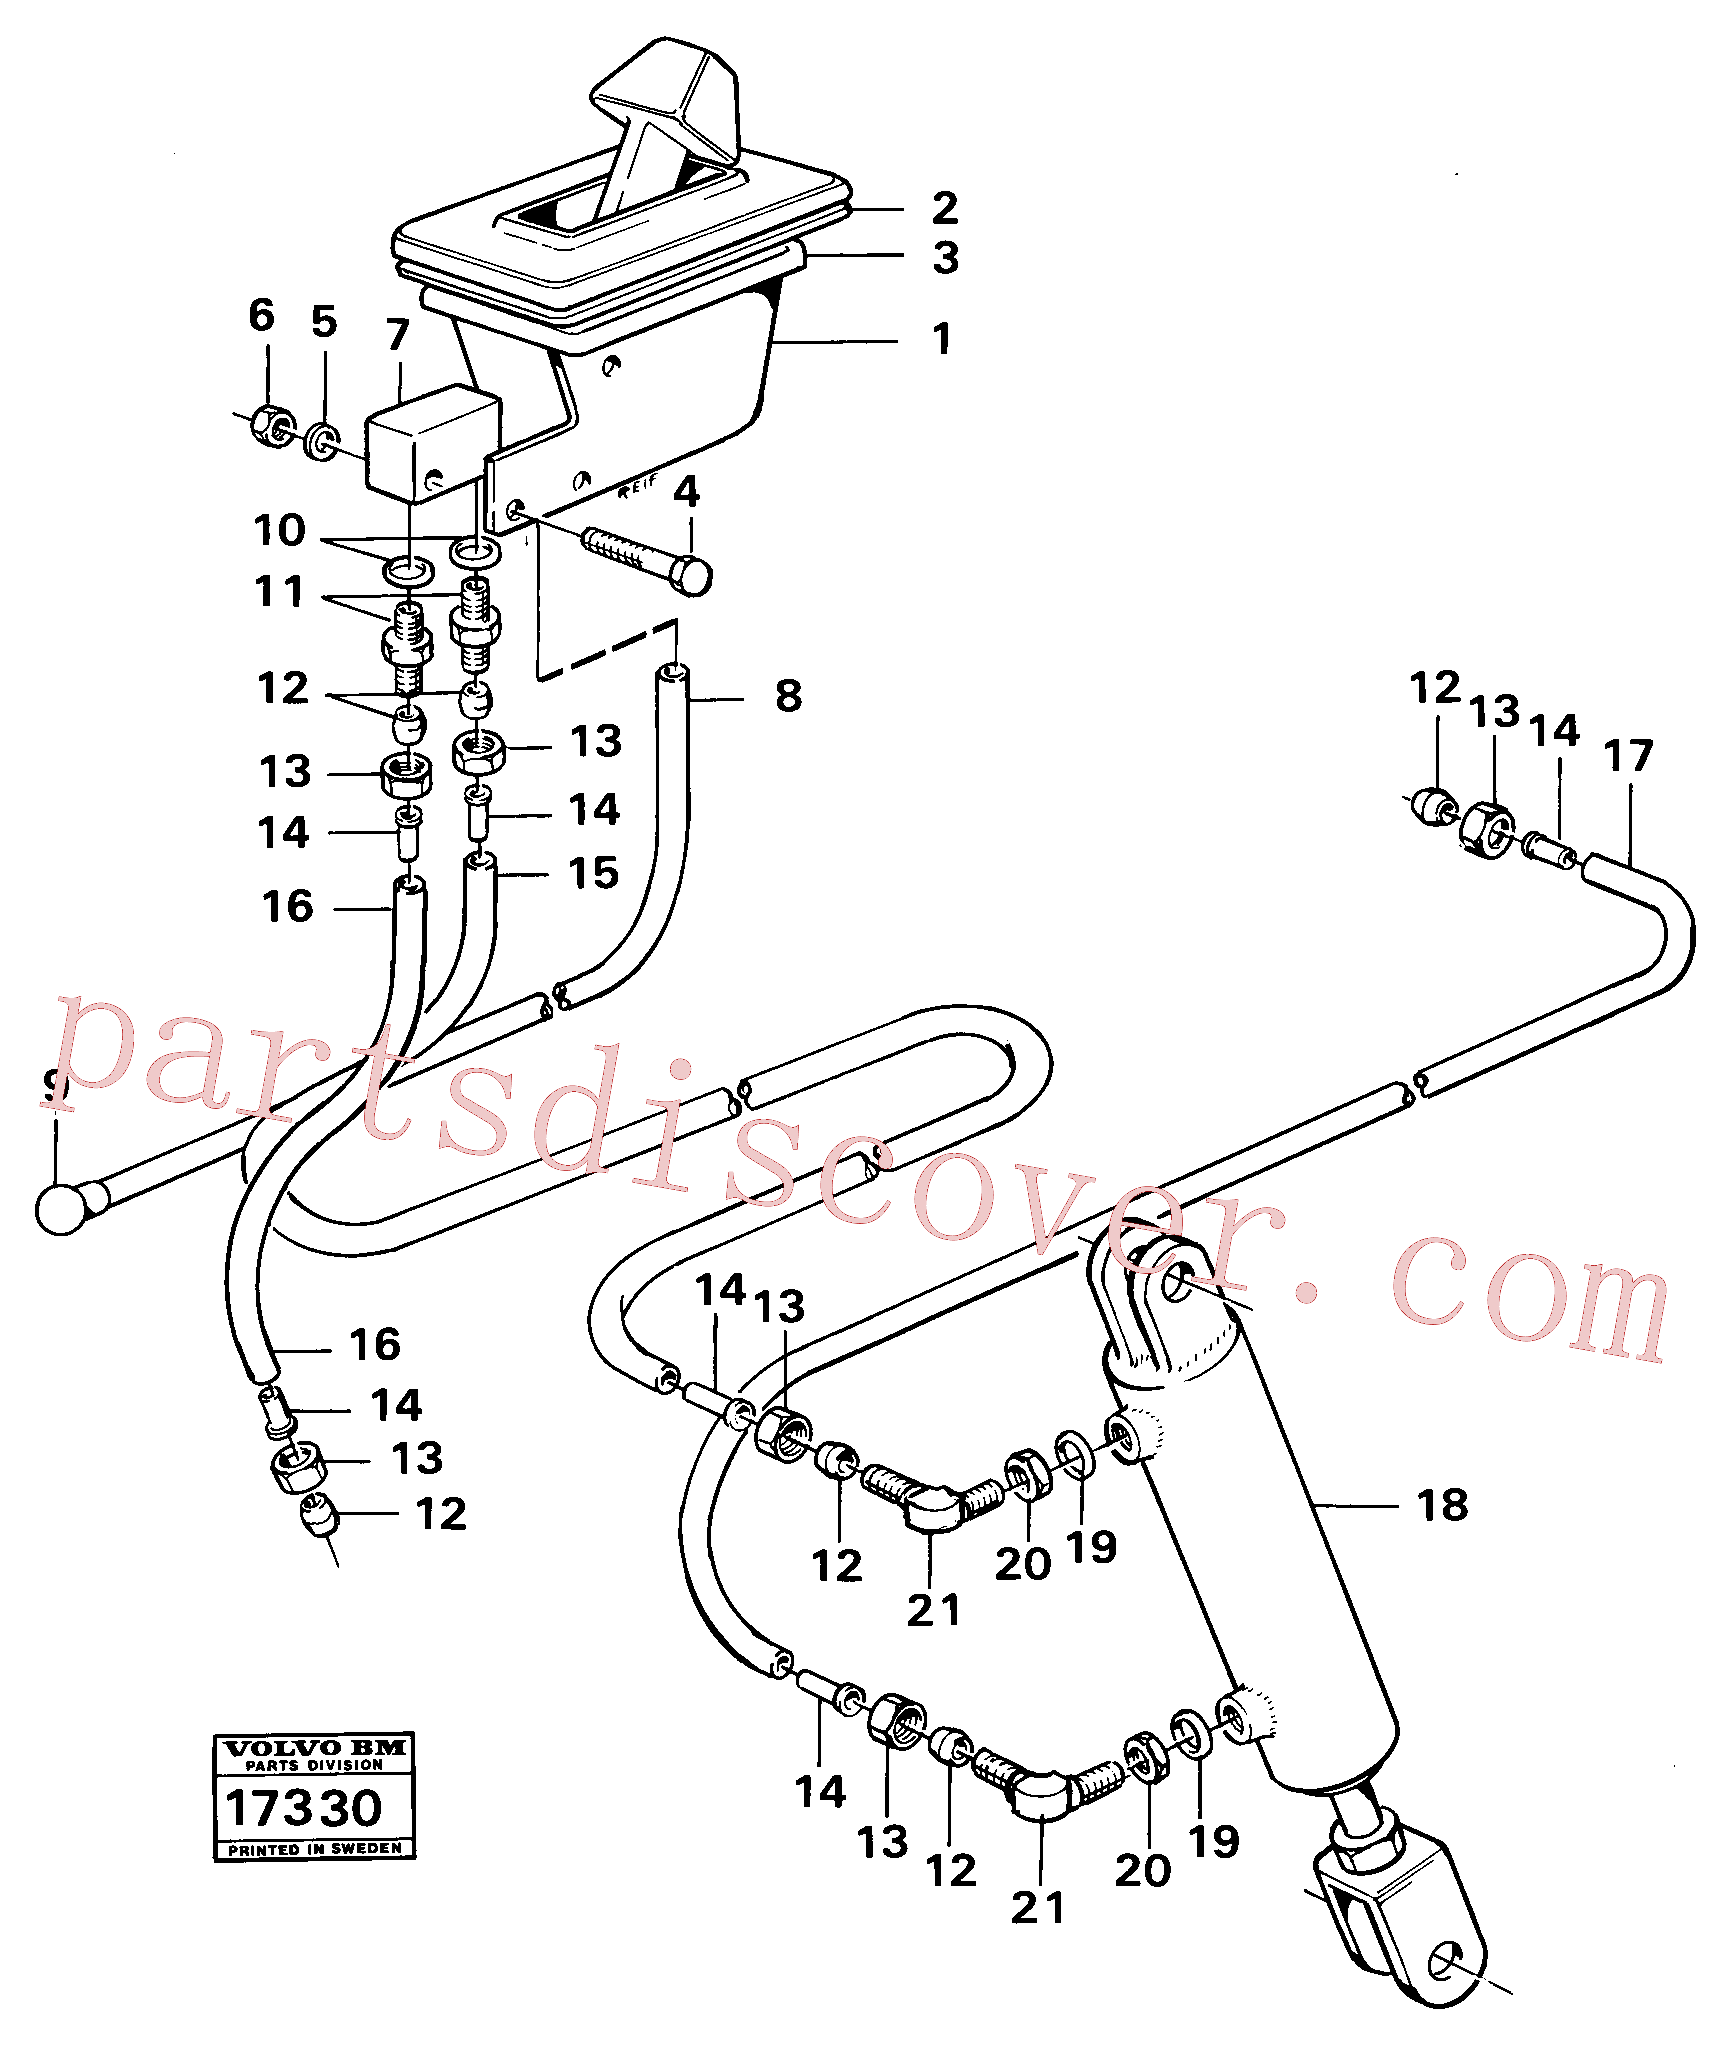 VOE13945915 for Volvo Control for high and low gear Tillv Nr 1800 -(17330 assembly)